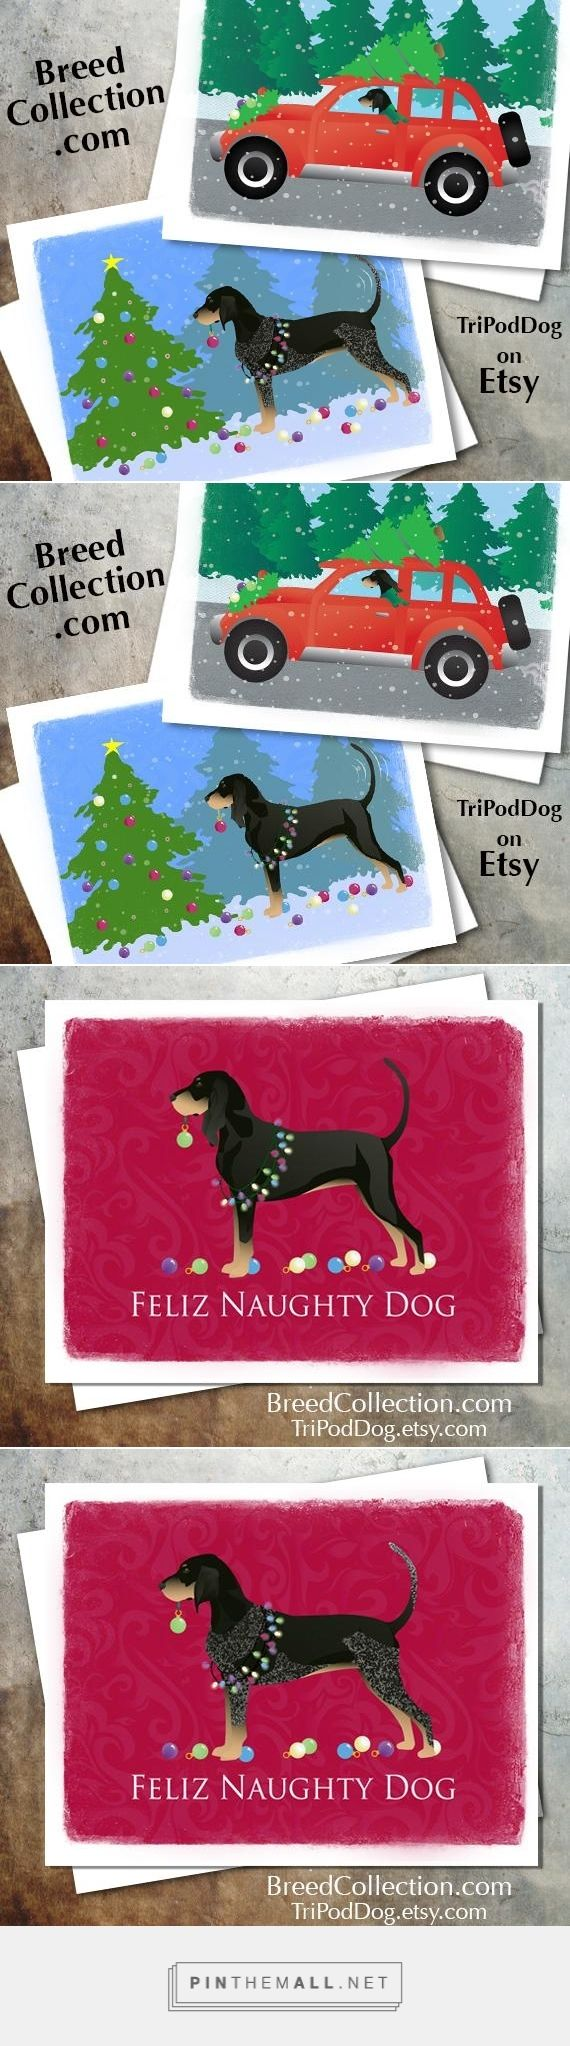 ❤ Black and Tan Coon hound and Bluetick Coonhound Dog Christmas Cards from the Breed Collection - Digital Download Printable - On Etsy